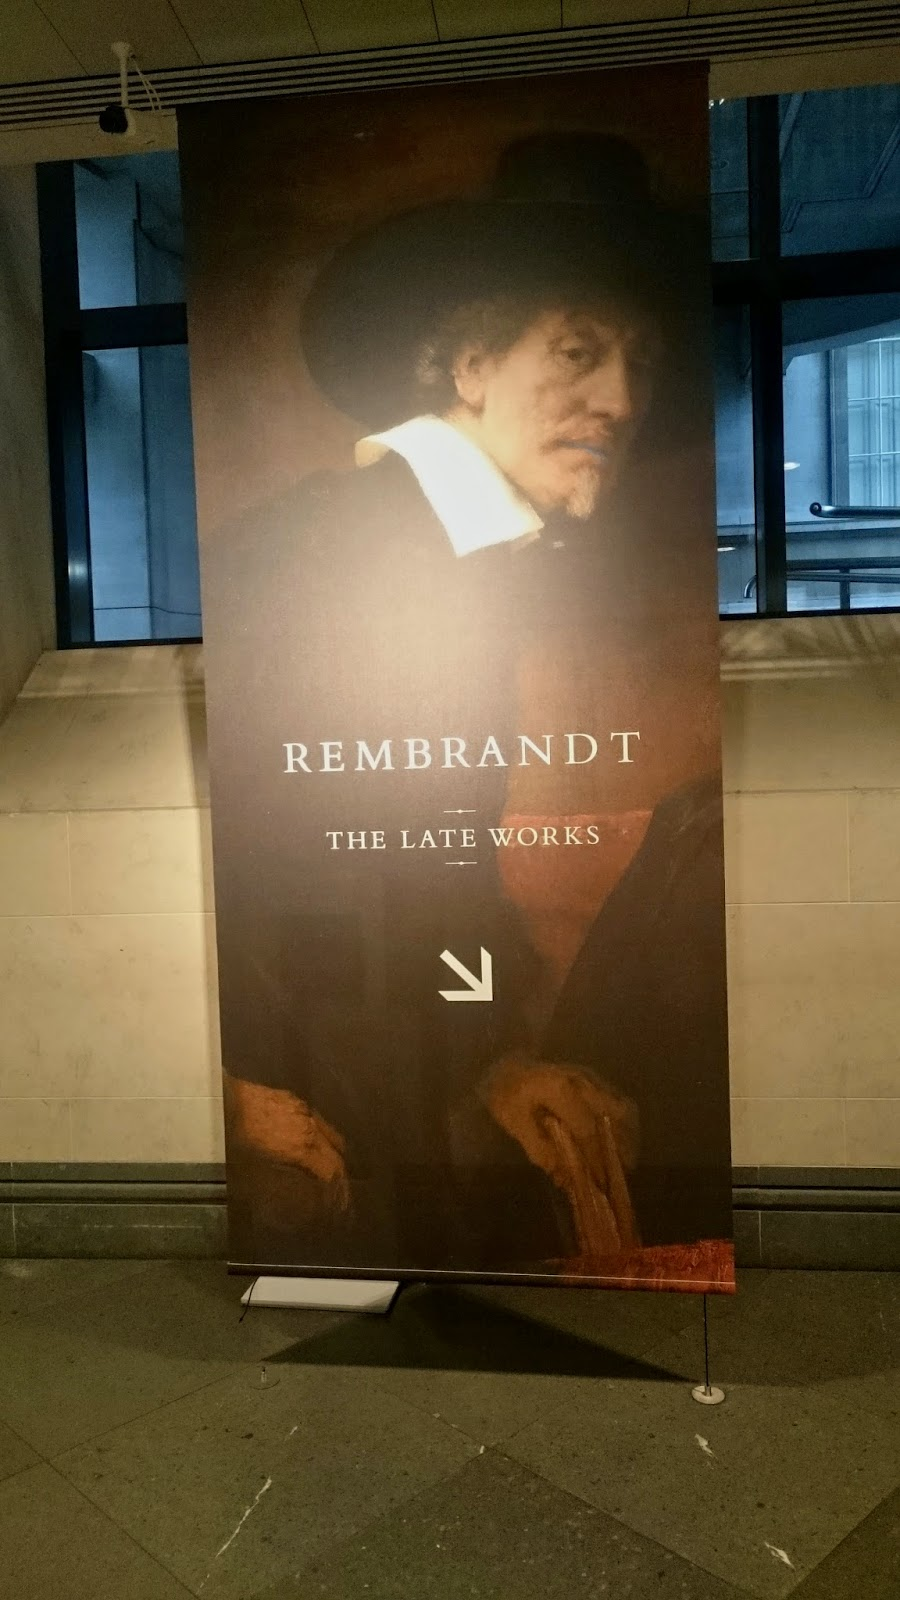 Rembrandt exhibition National Gallery